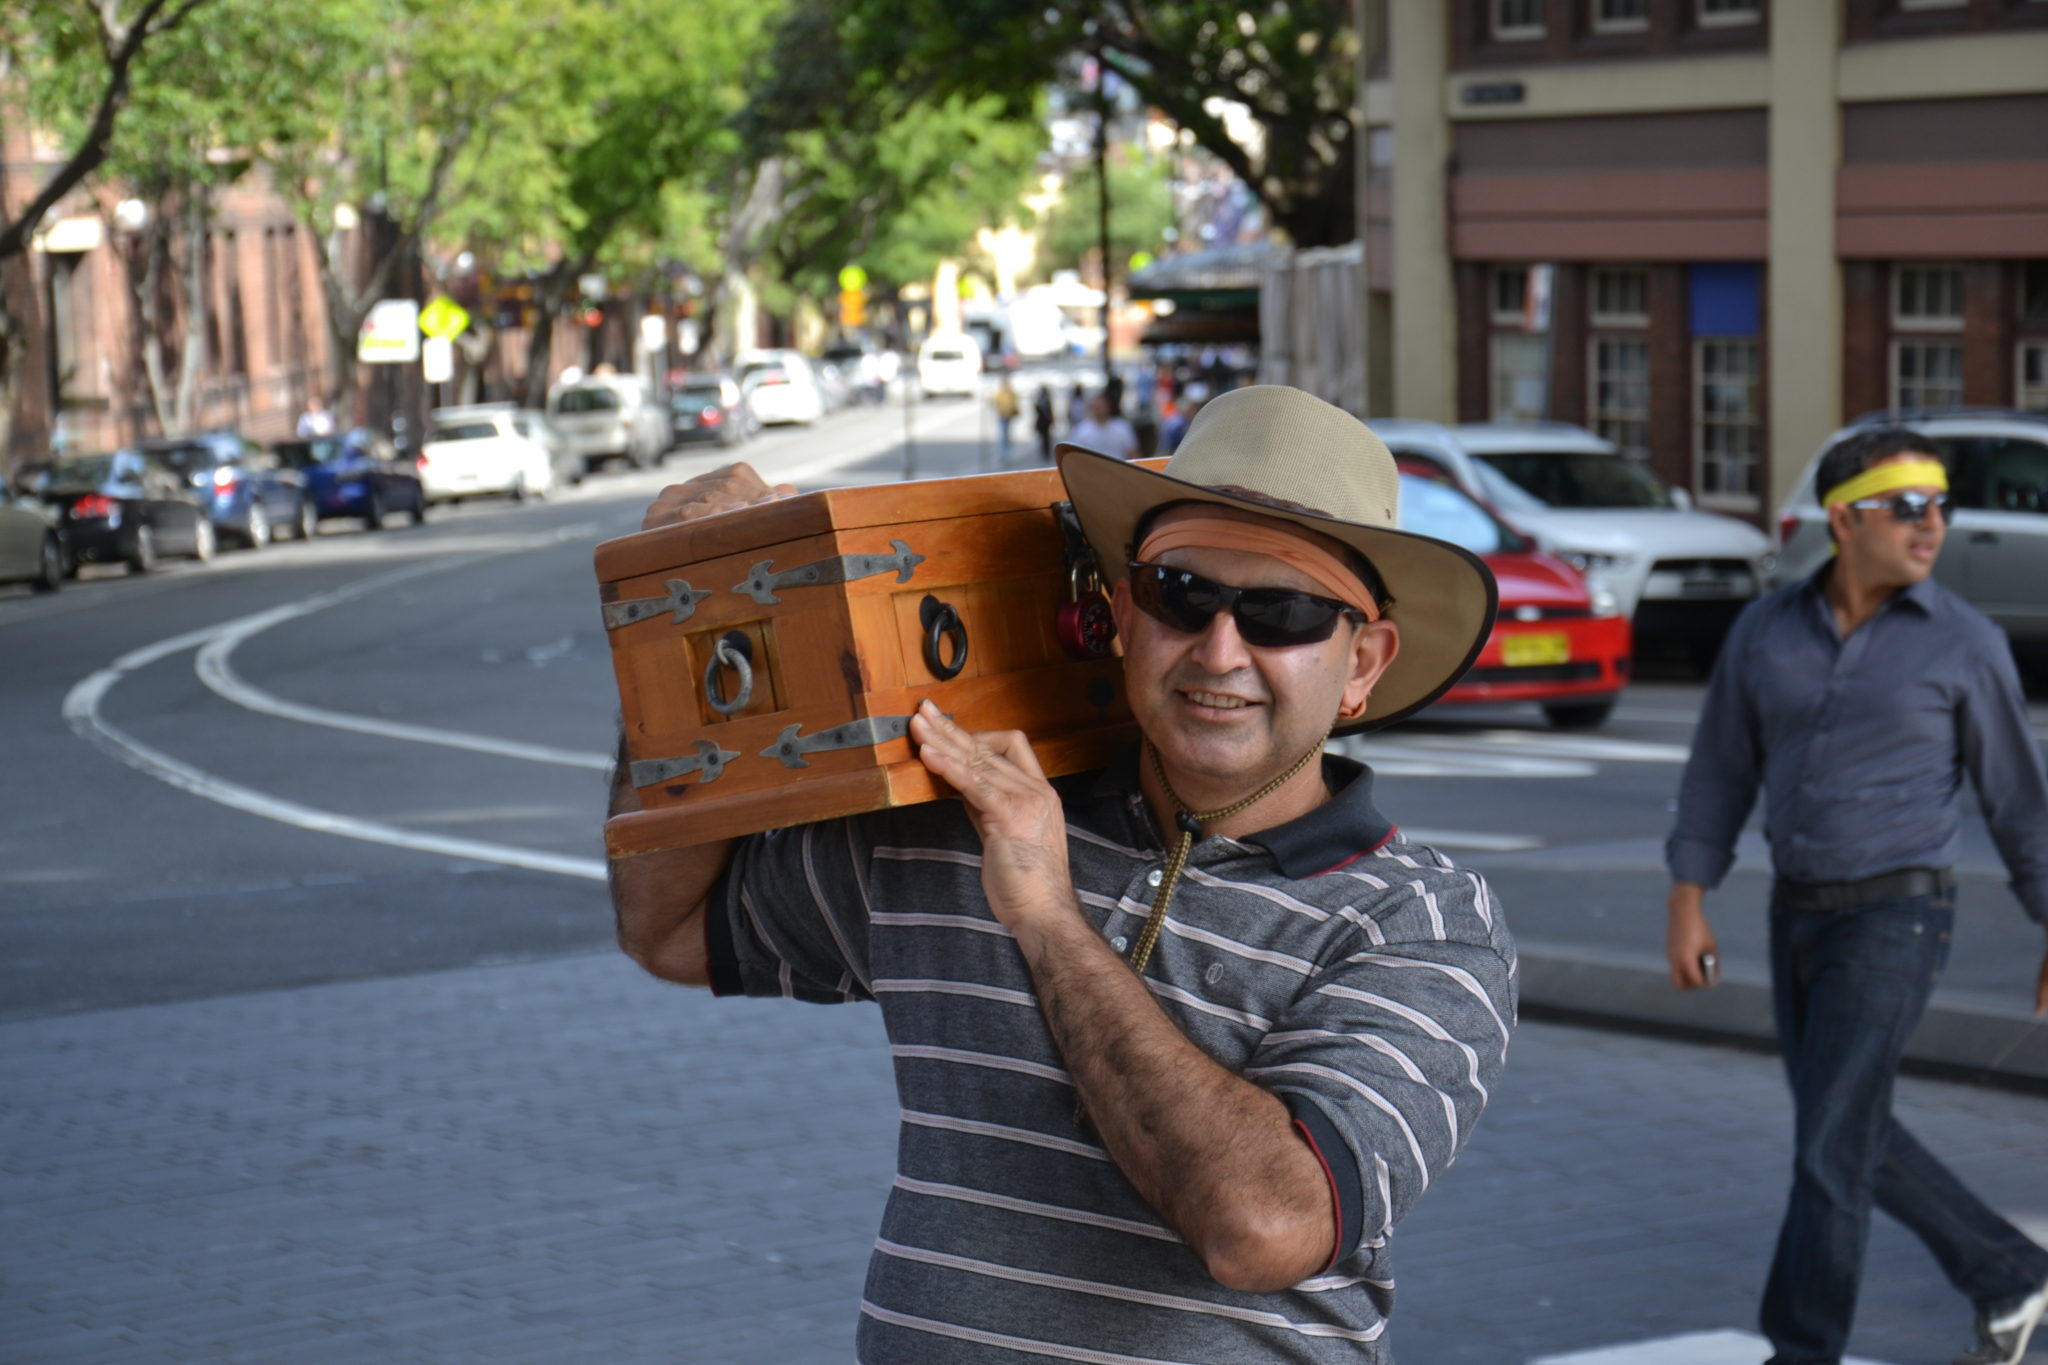 Treasure Hunt celebration team building activities Sydney The Rocks treasure Chest bounty found